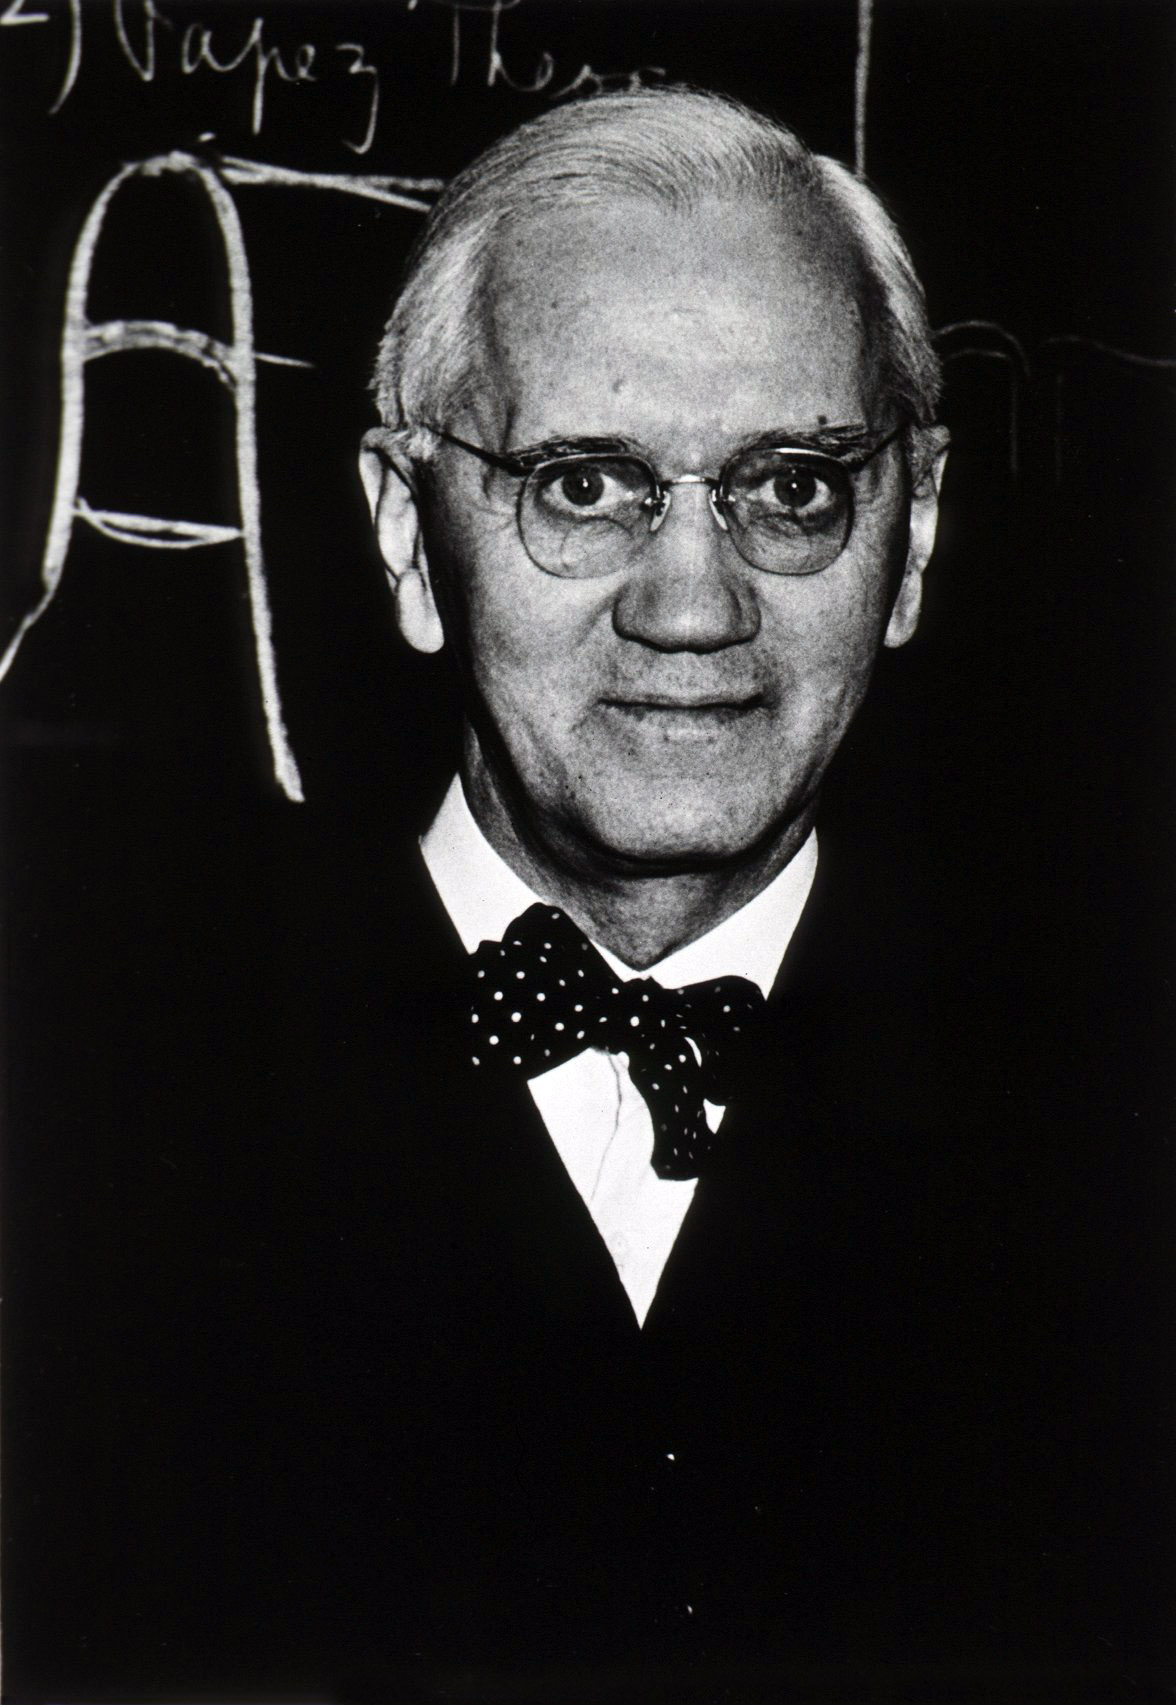 sir alexander fleming an autobiography Beginnings alexander fleming was born on august 6 alexander arrived in london early in 1895 in 1944 fleming was knighted and became sir alexander fleming.